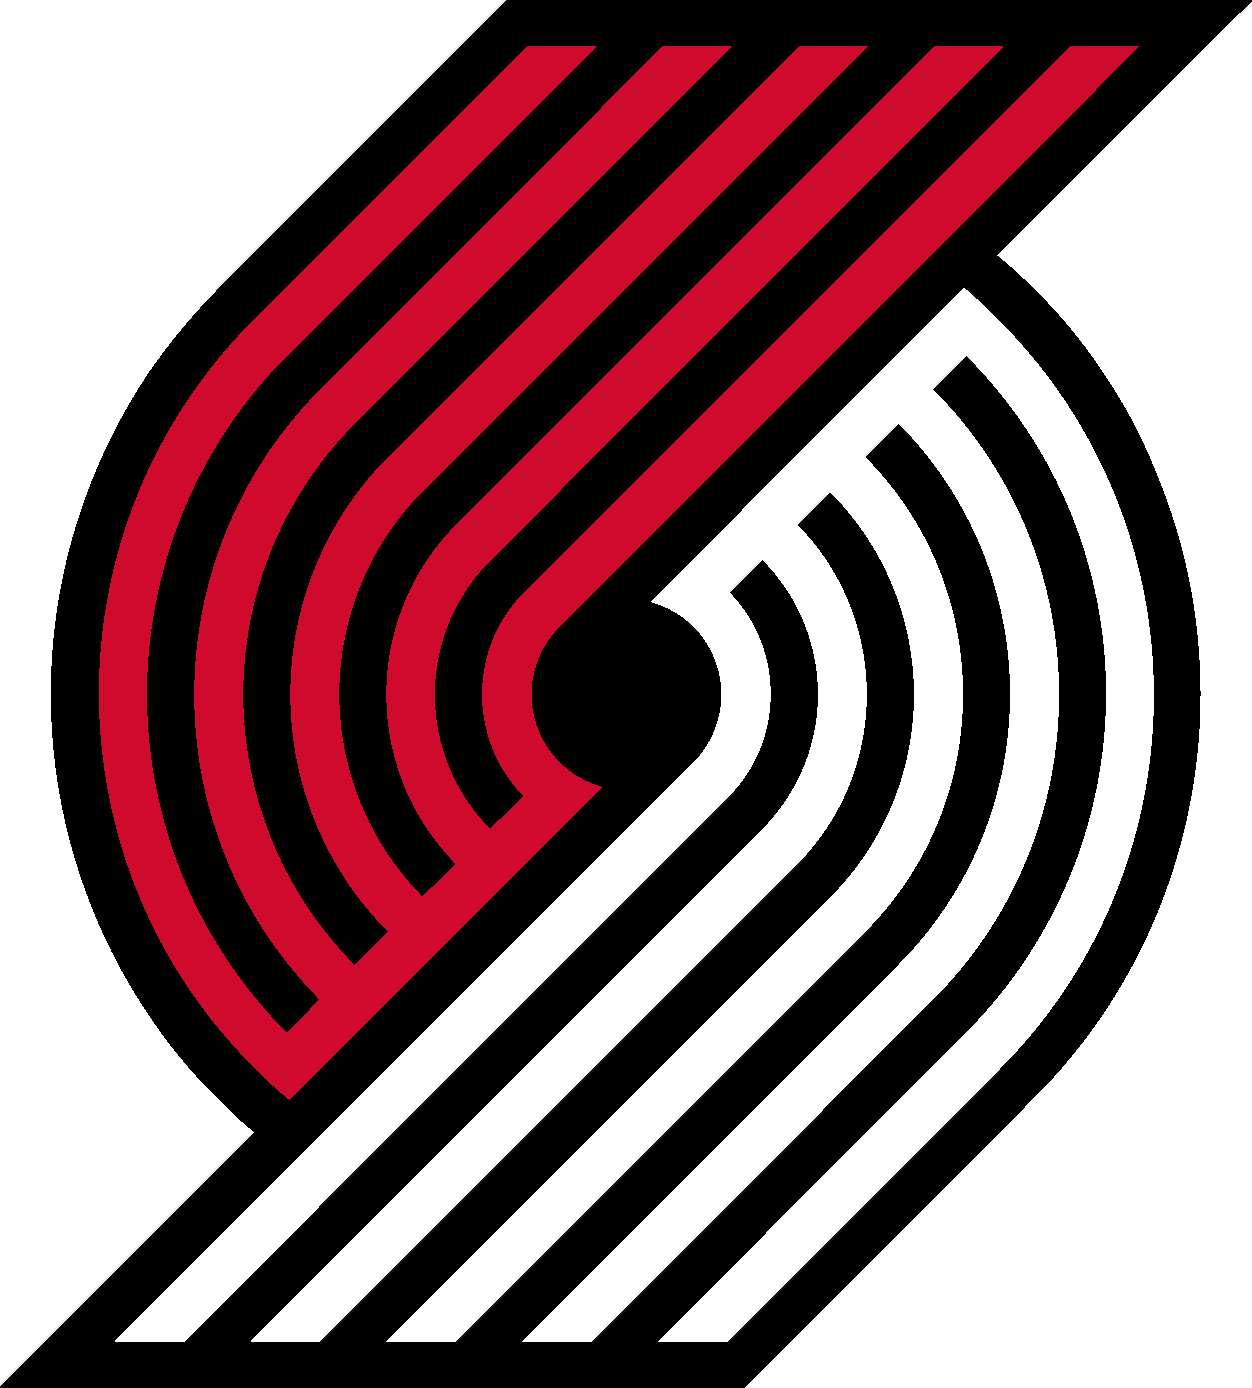 Portland Trail Blazers Logo Vector Eps Free Download Logo Icons Clipart Portland Trailblazers Trail Blazers Logo Basketball